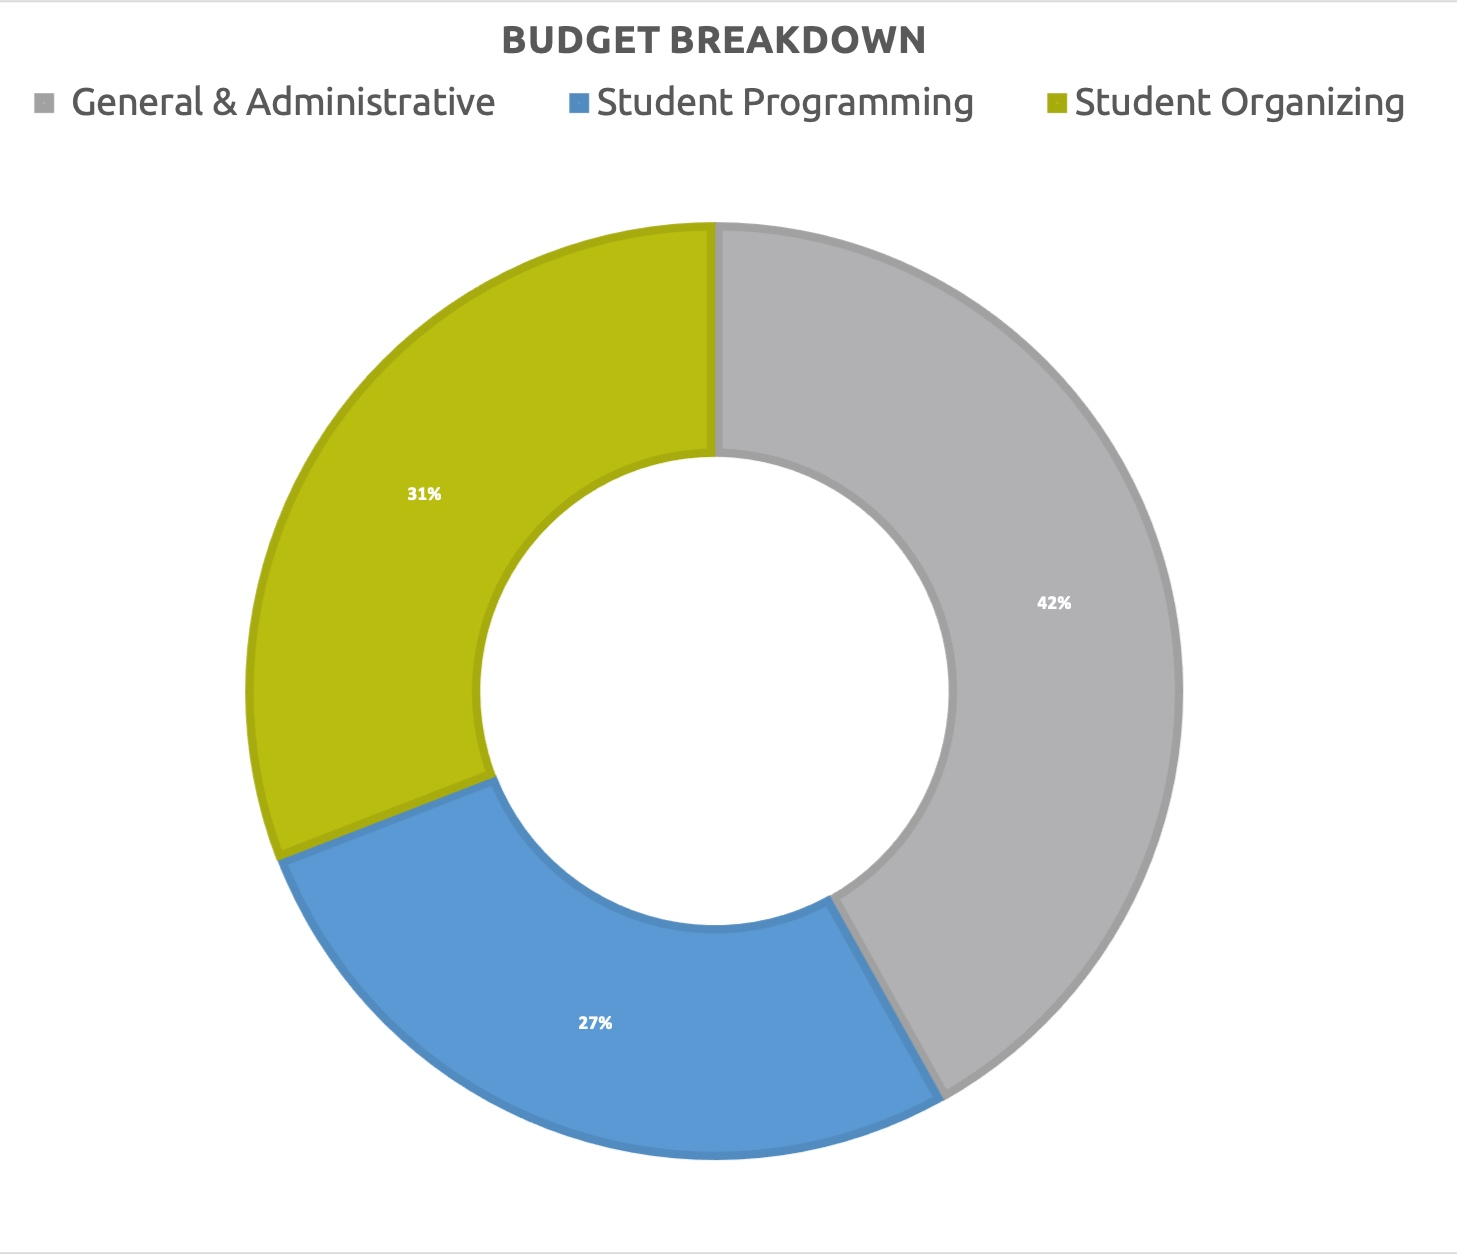 Pie+Chart+of+Budget+Breakdown.jpg